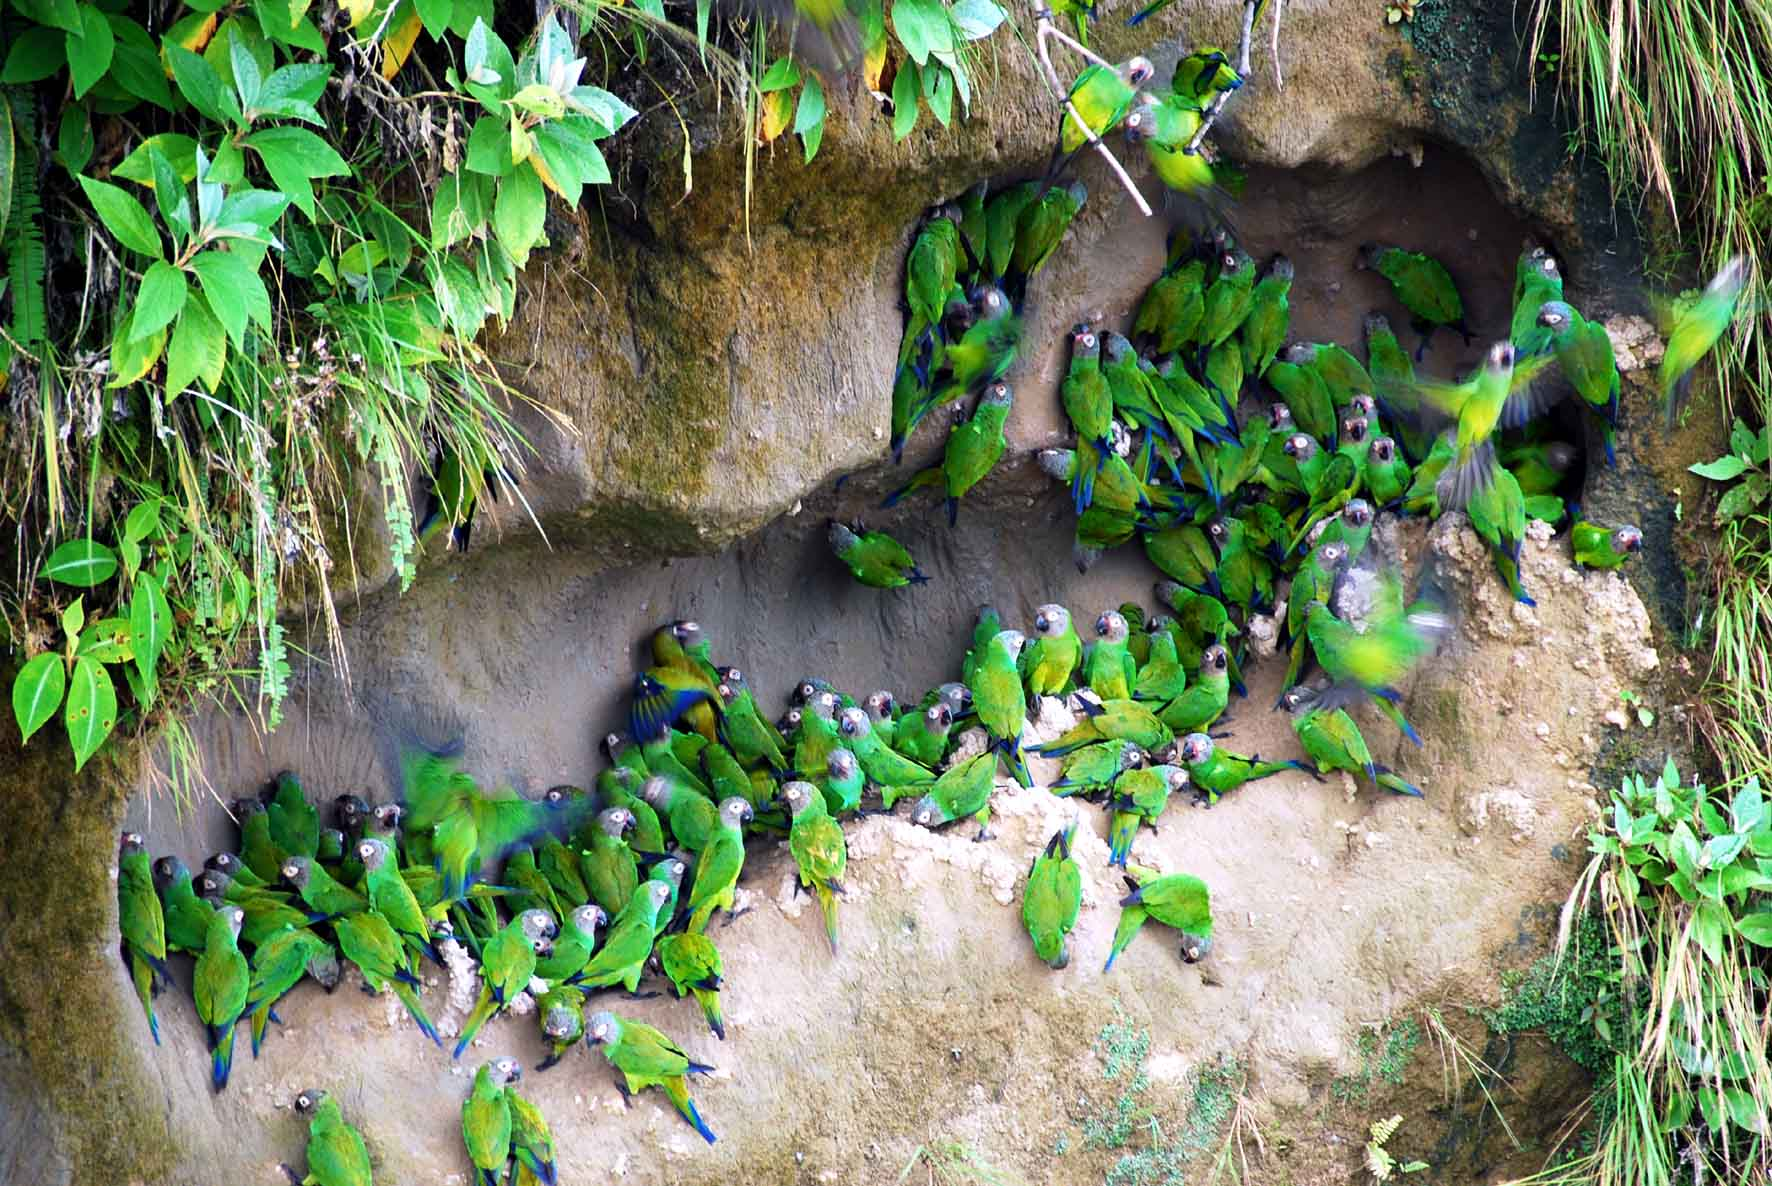 Amazon Jungle - Parrot Clay Lick